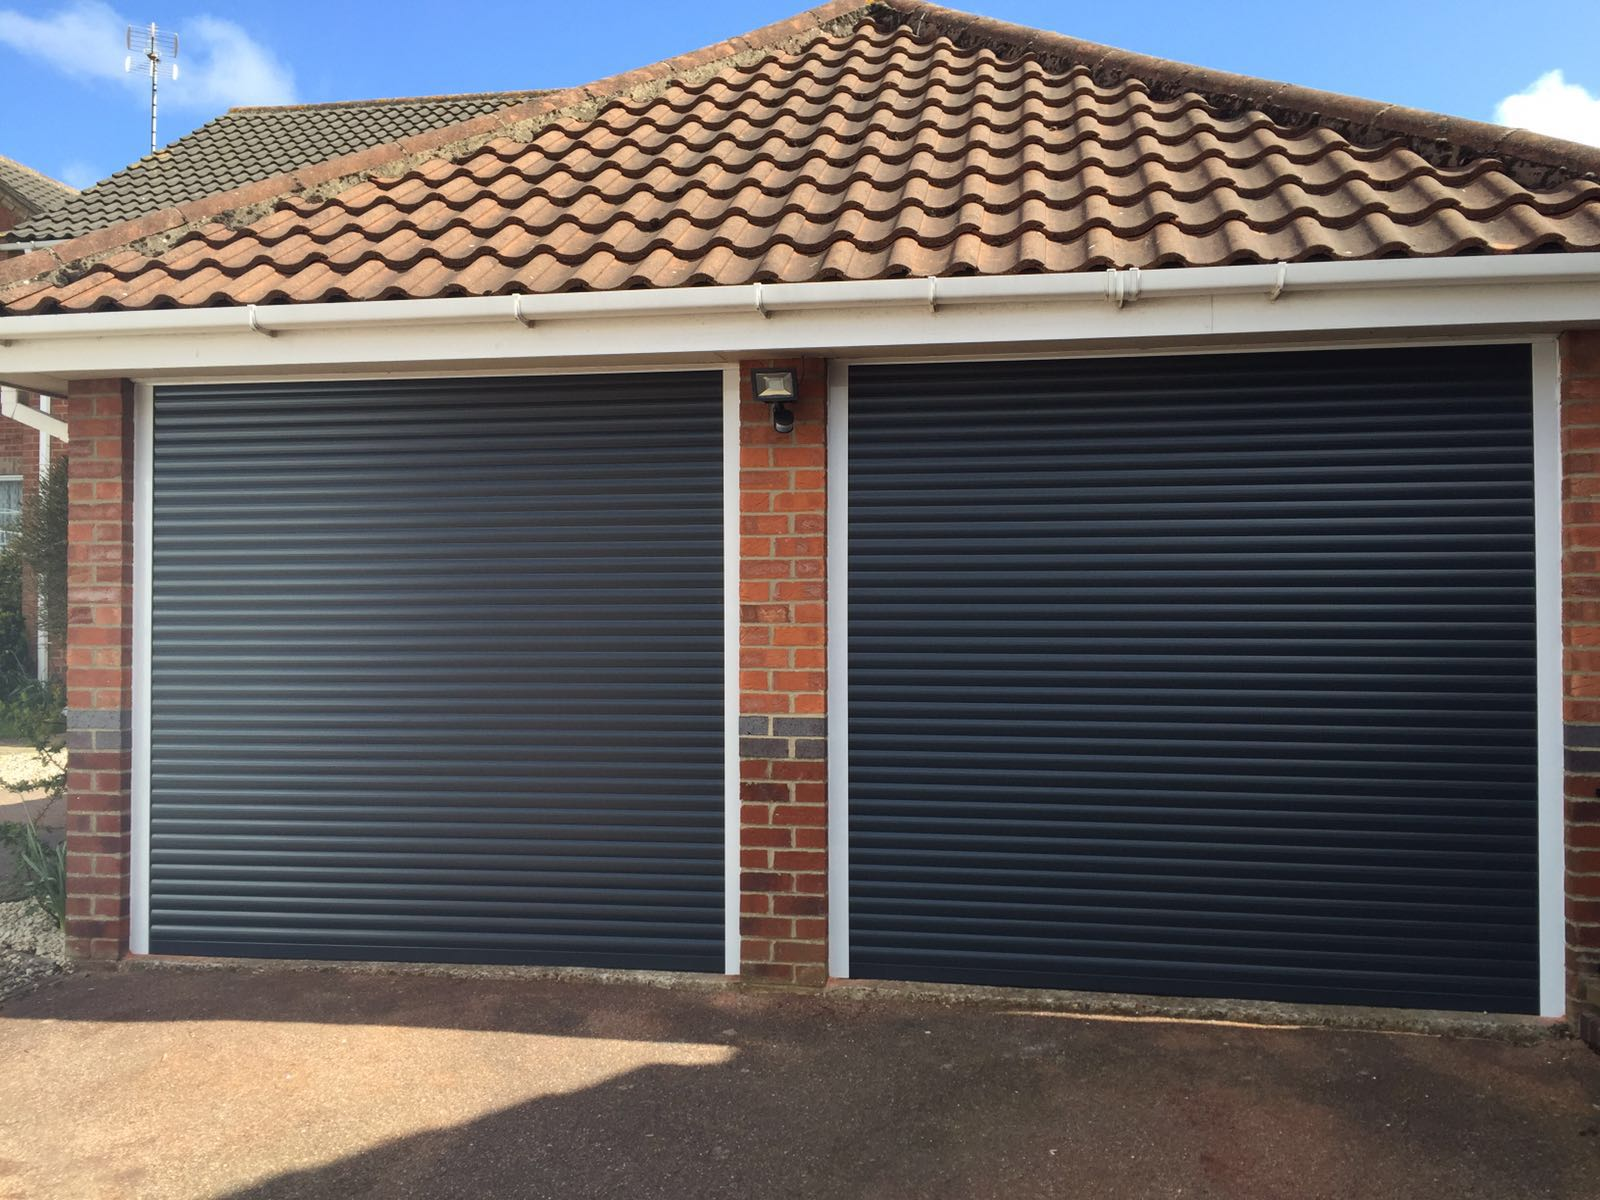 Le Meilleur Roller Garage Door Prices Price Calculator Rollerdor Ce Mois Ci